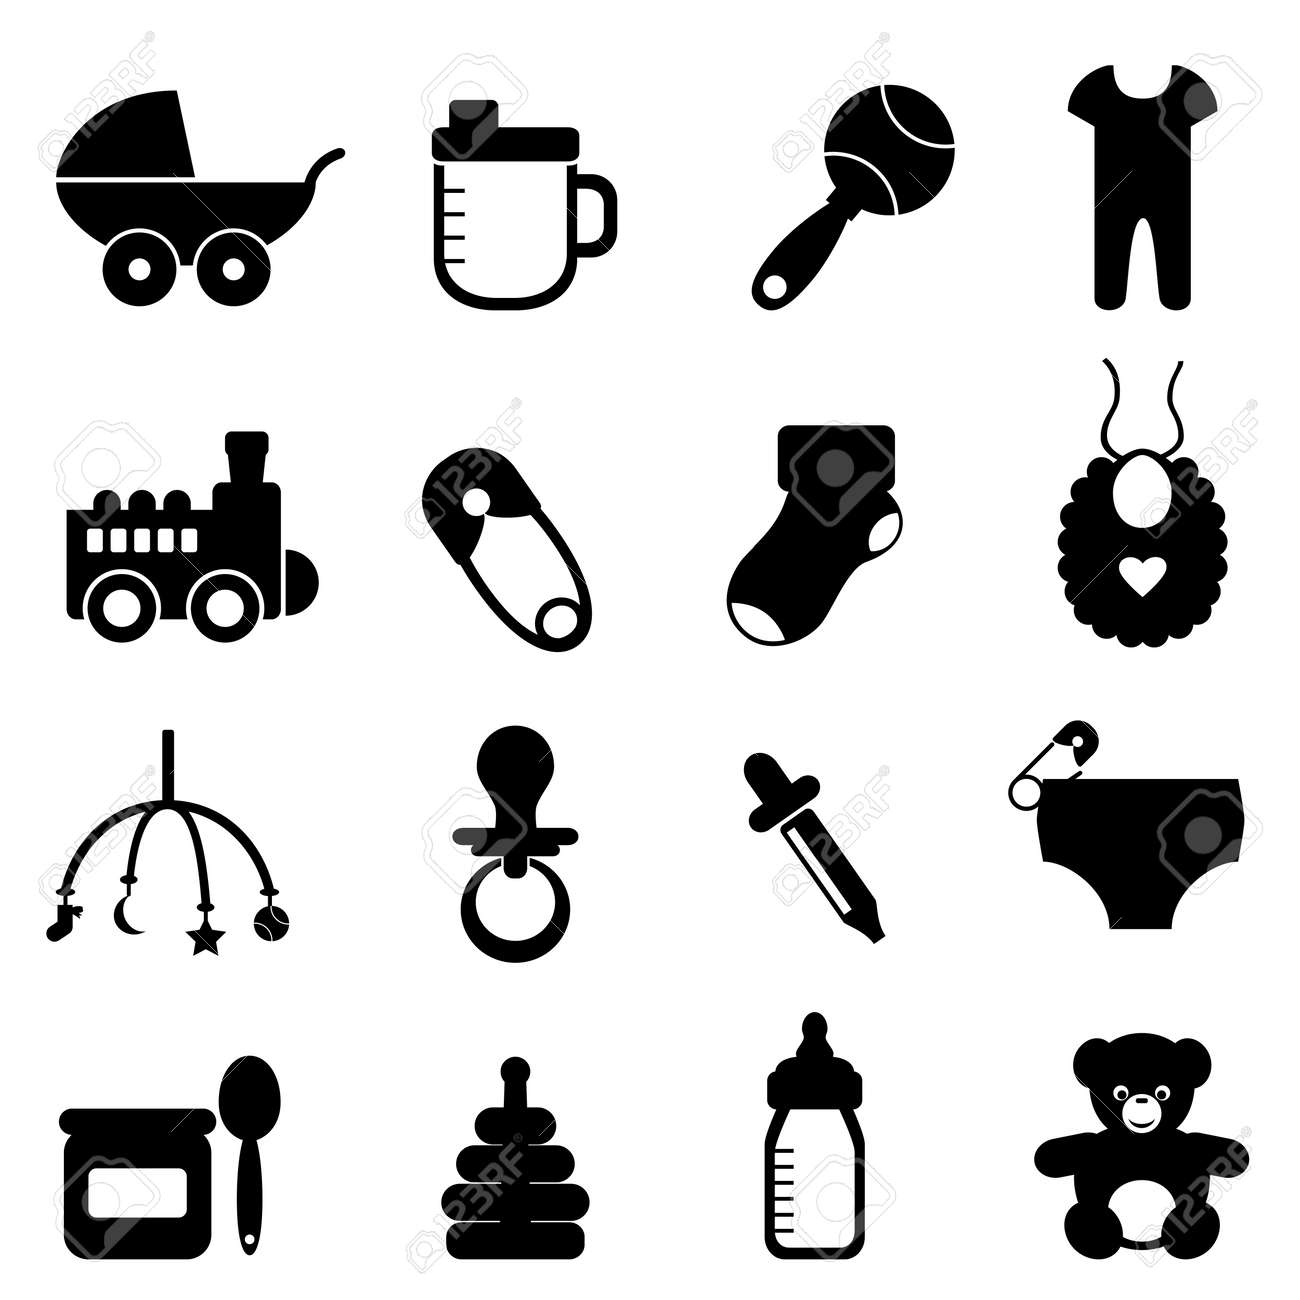 Baby objects icon set in black - 13225171